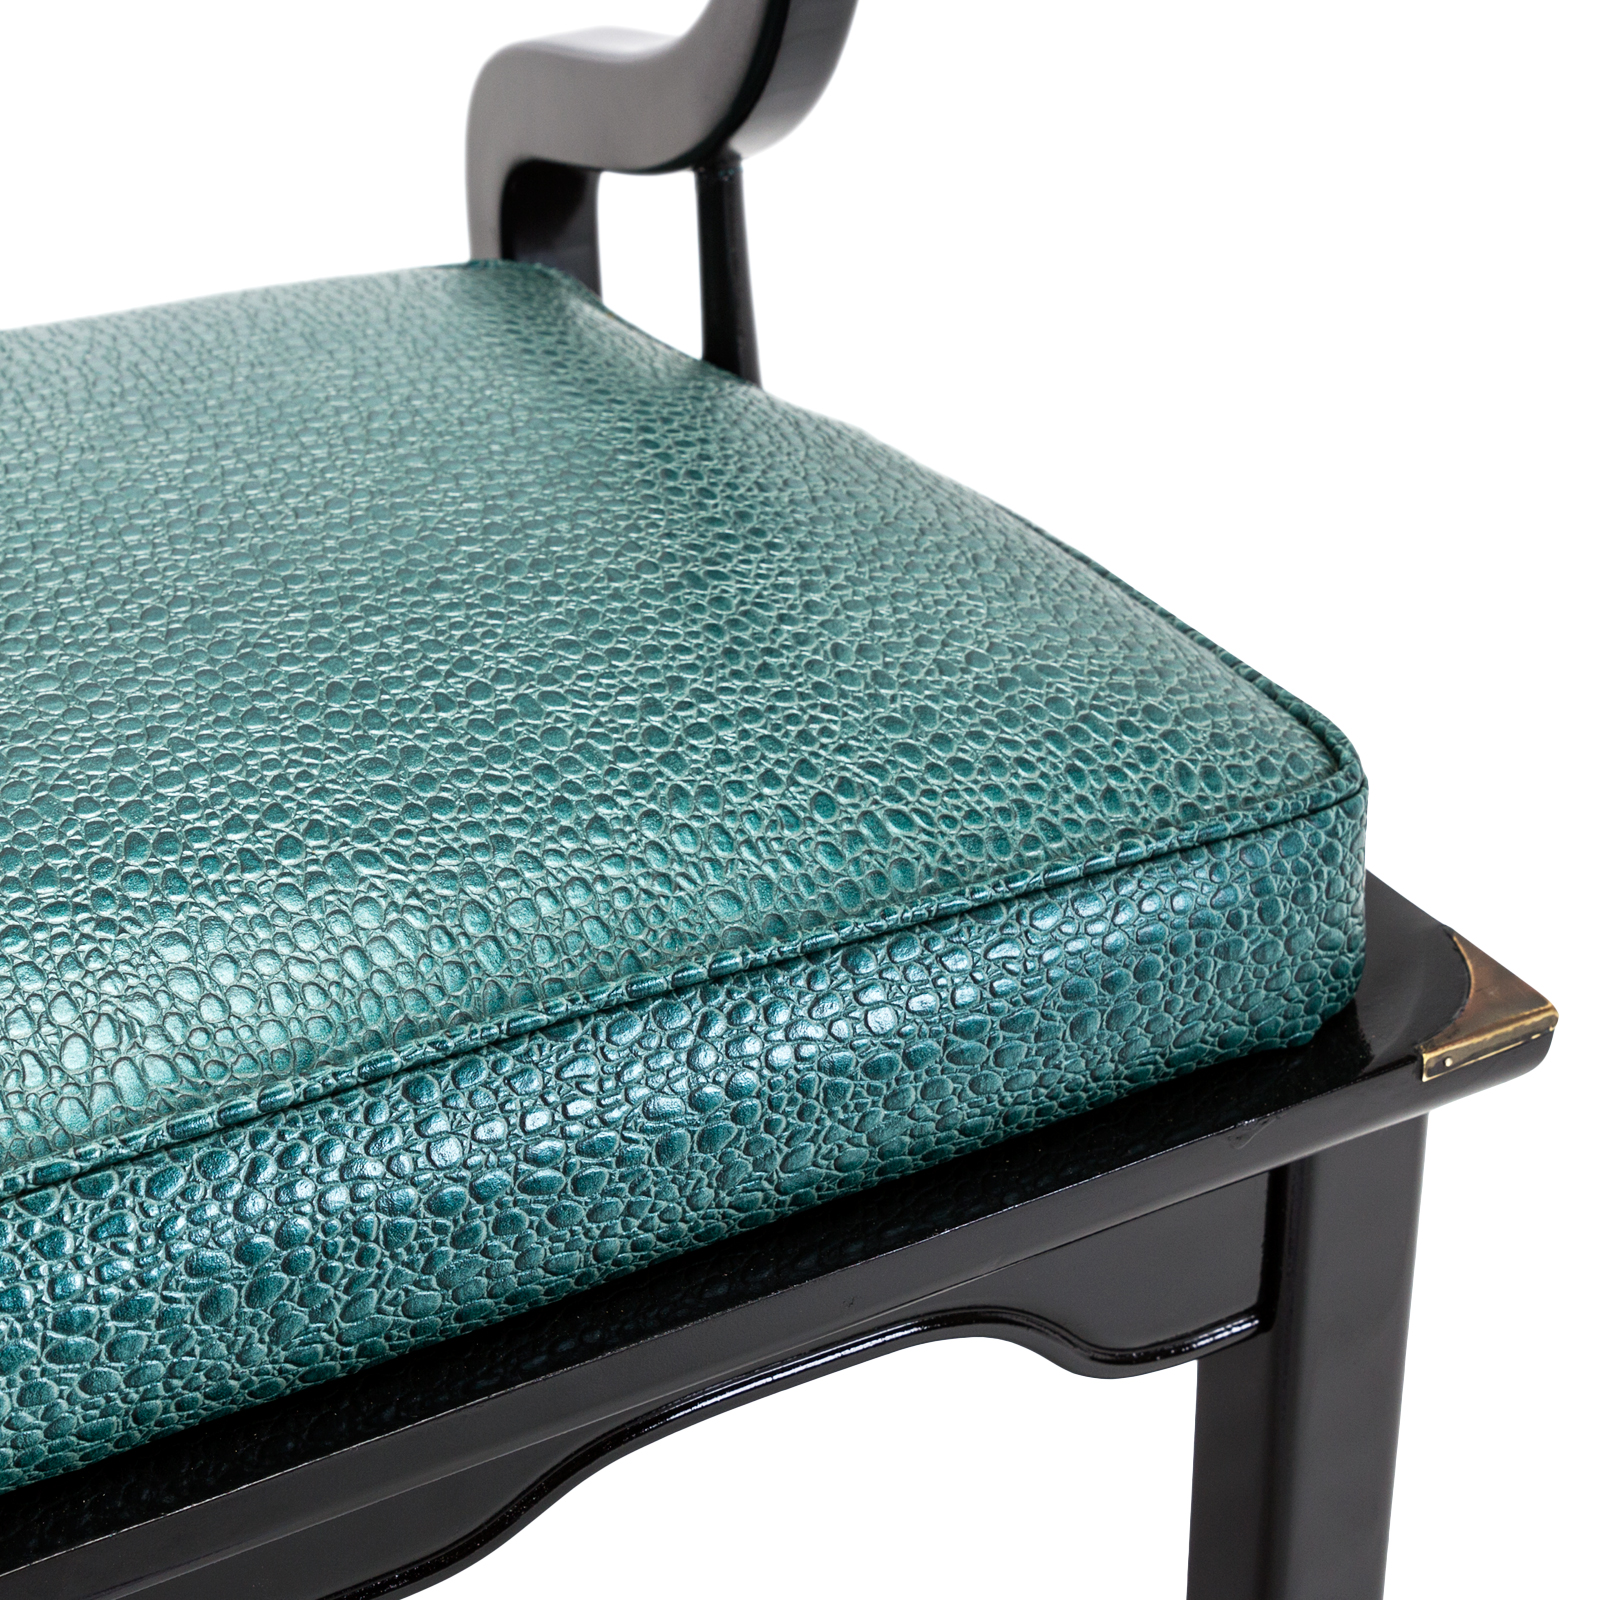 teal lounge chair cheap wooden chairs horseshoe rentals event furniture rental